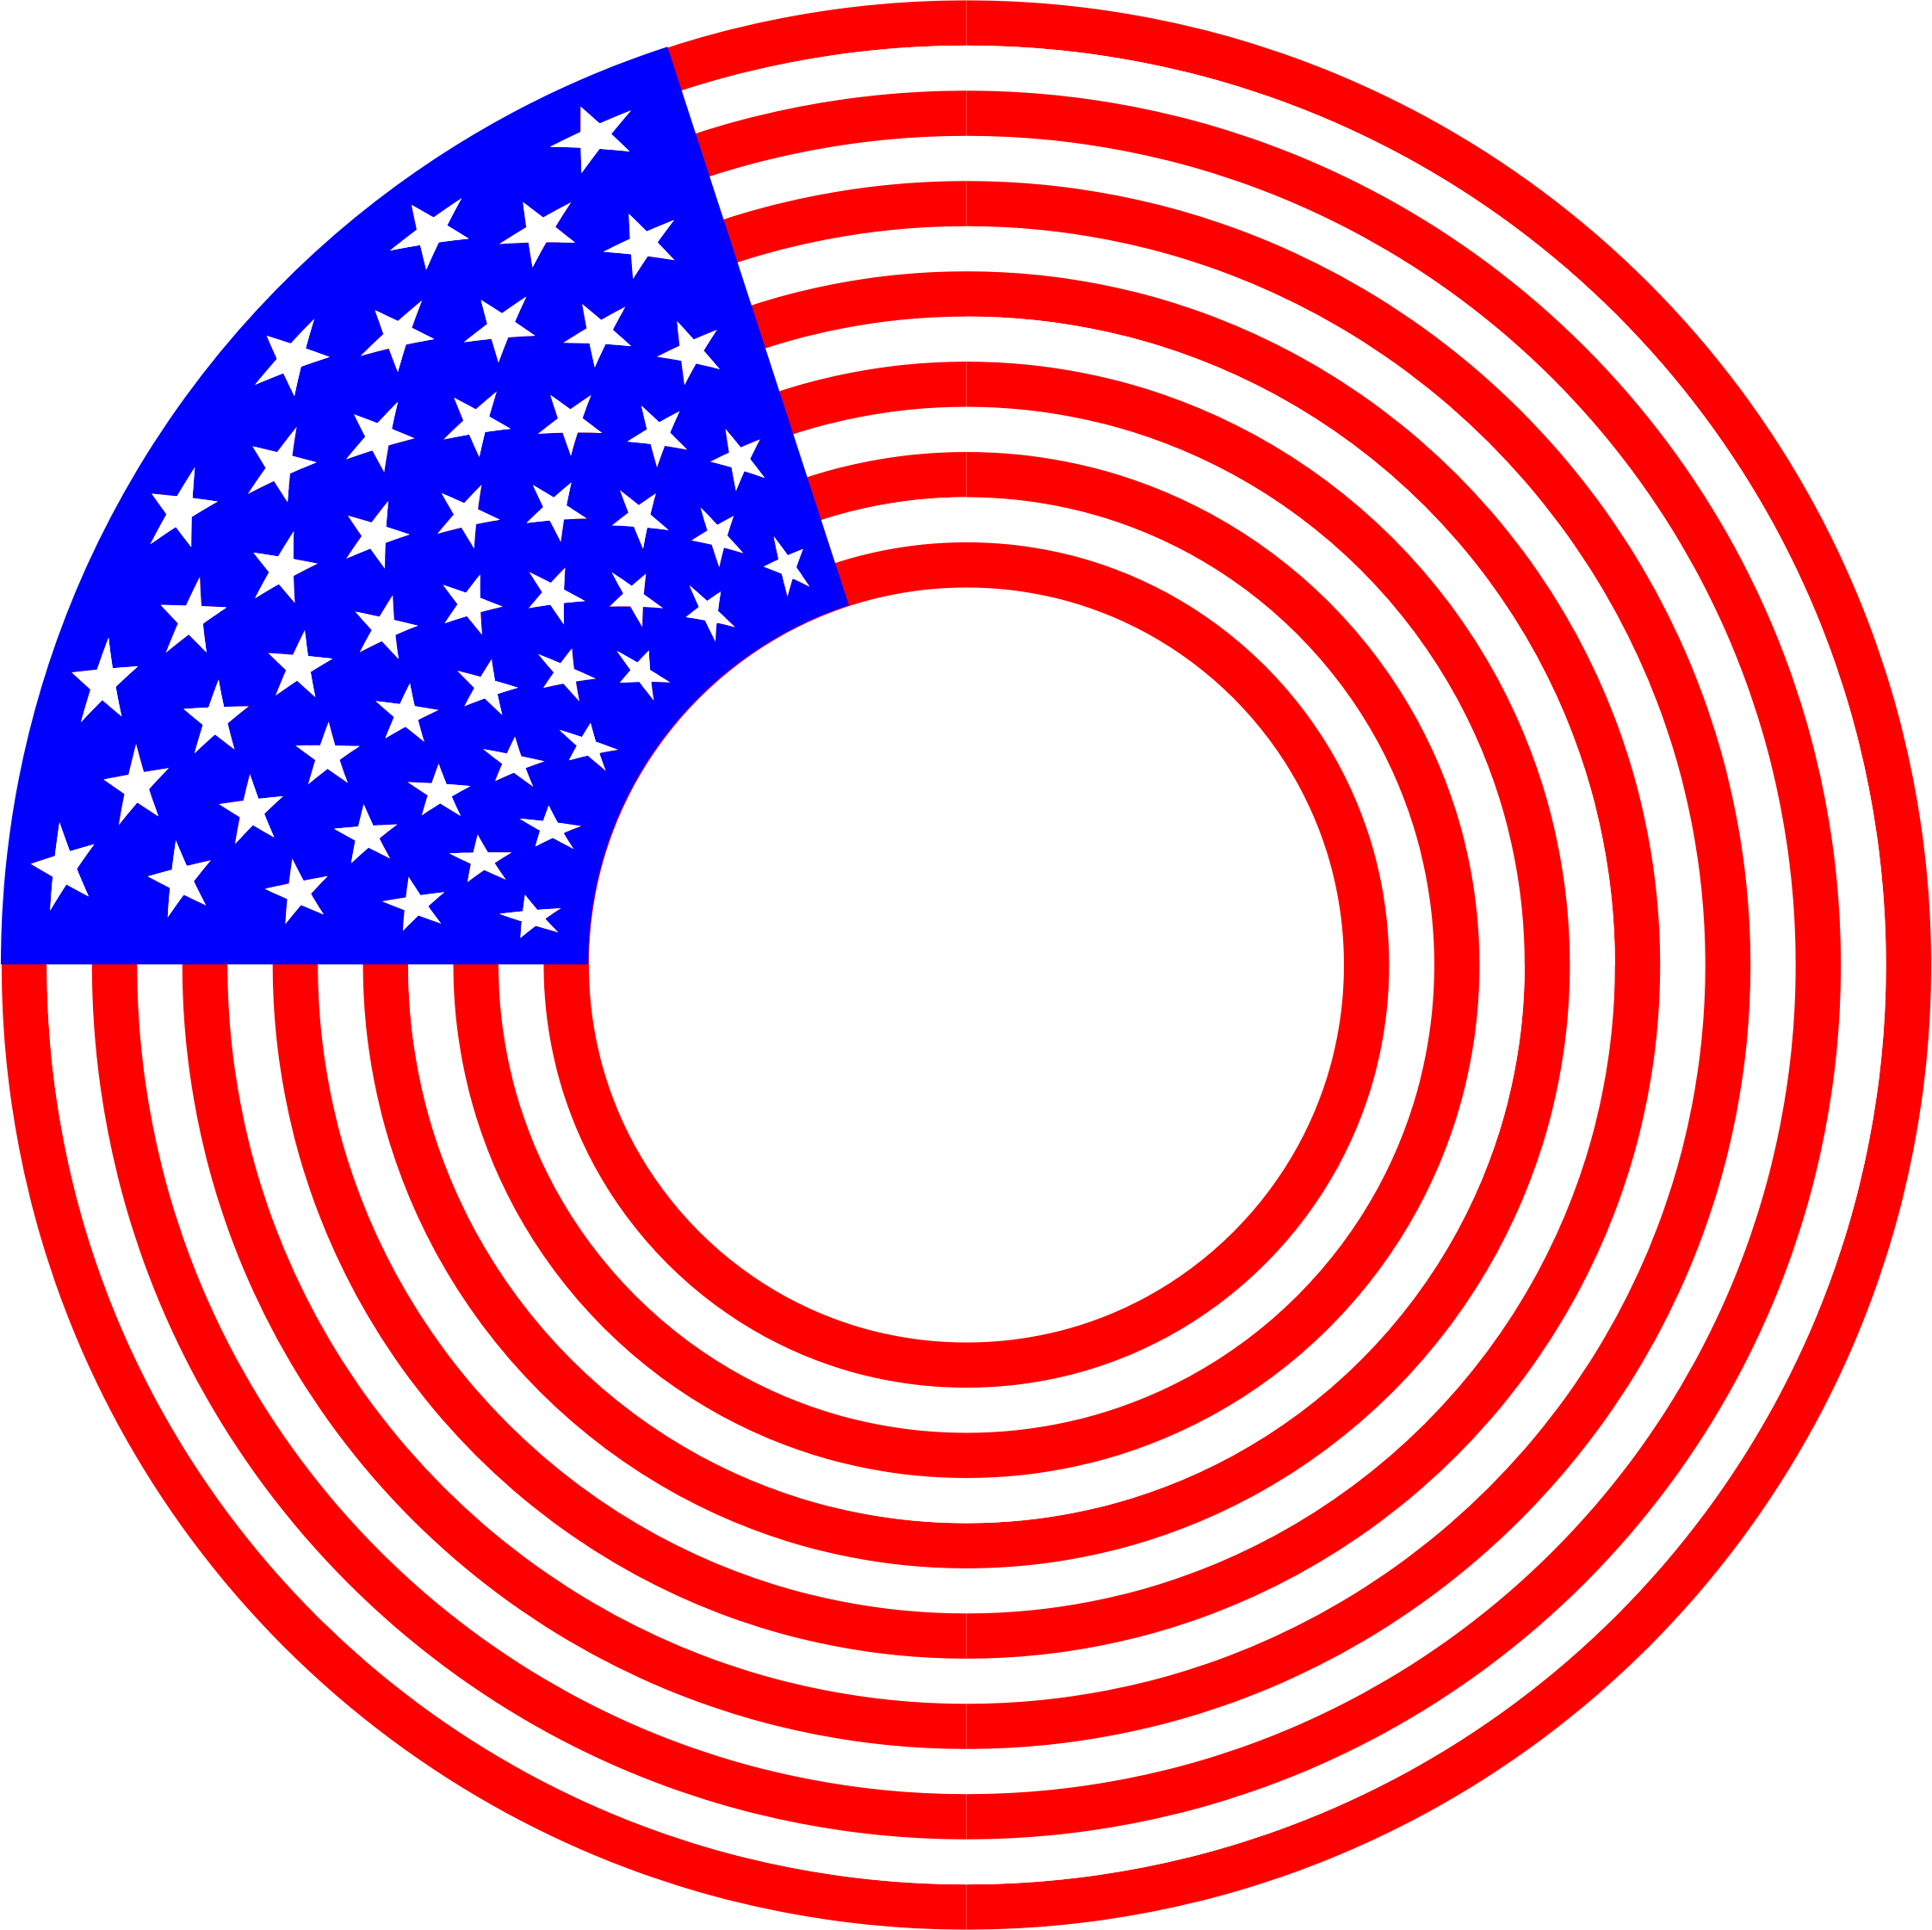 Stars And Stripes Circle 2 by GDJ